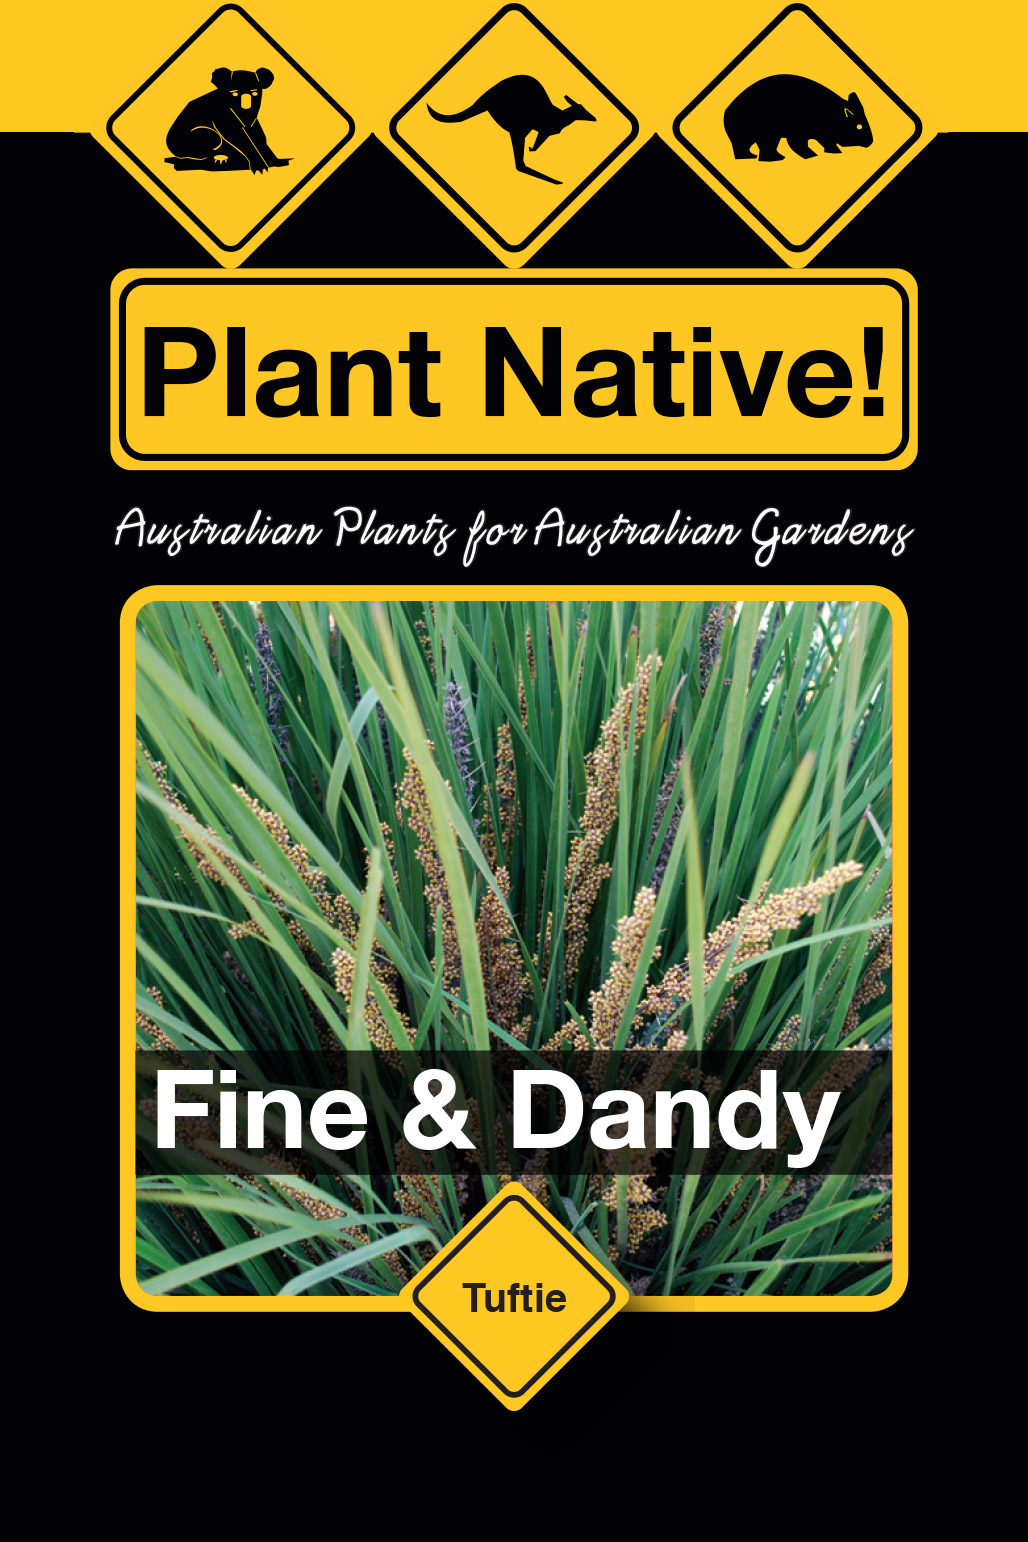 Fine & Dandy - Plant Native!